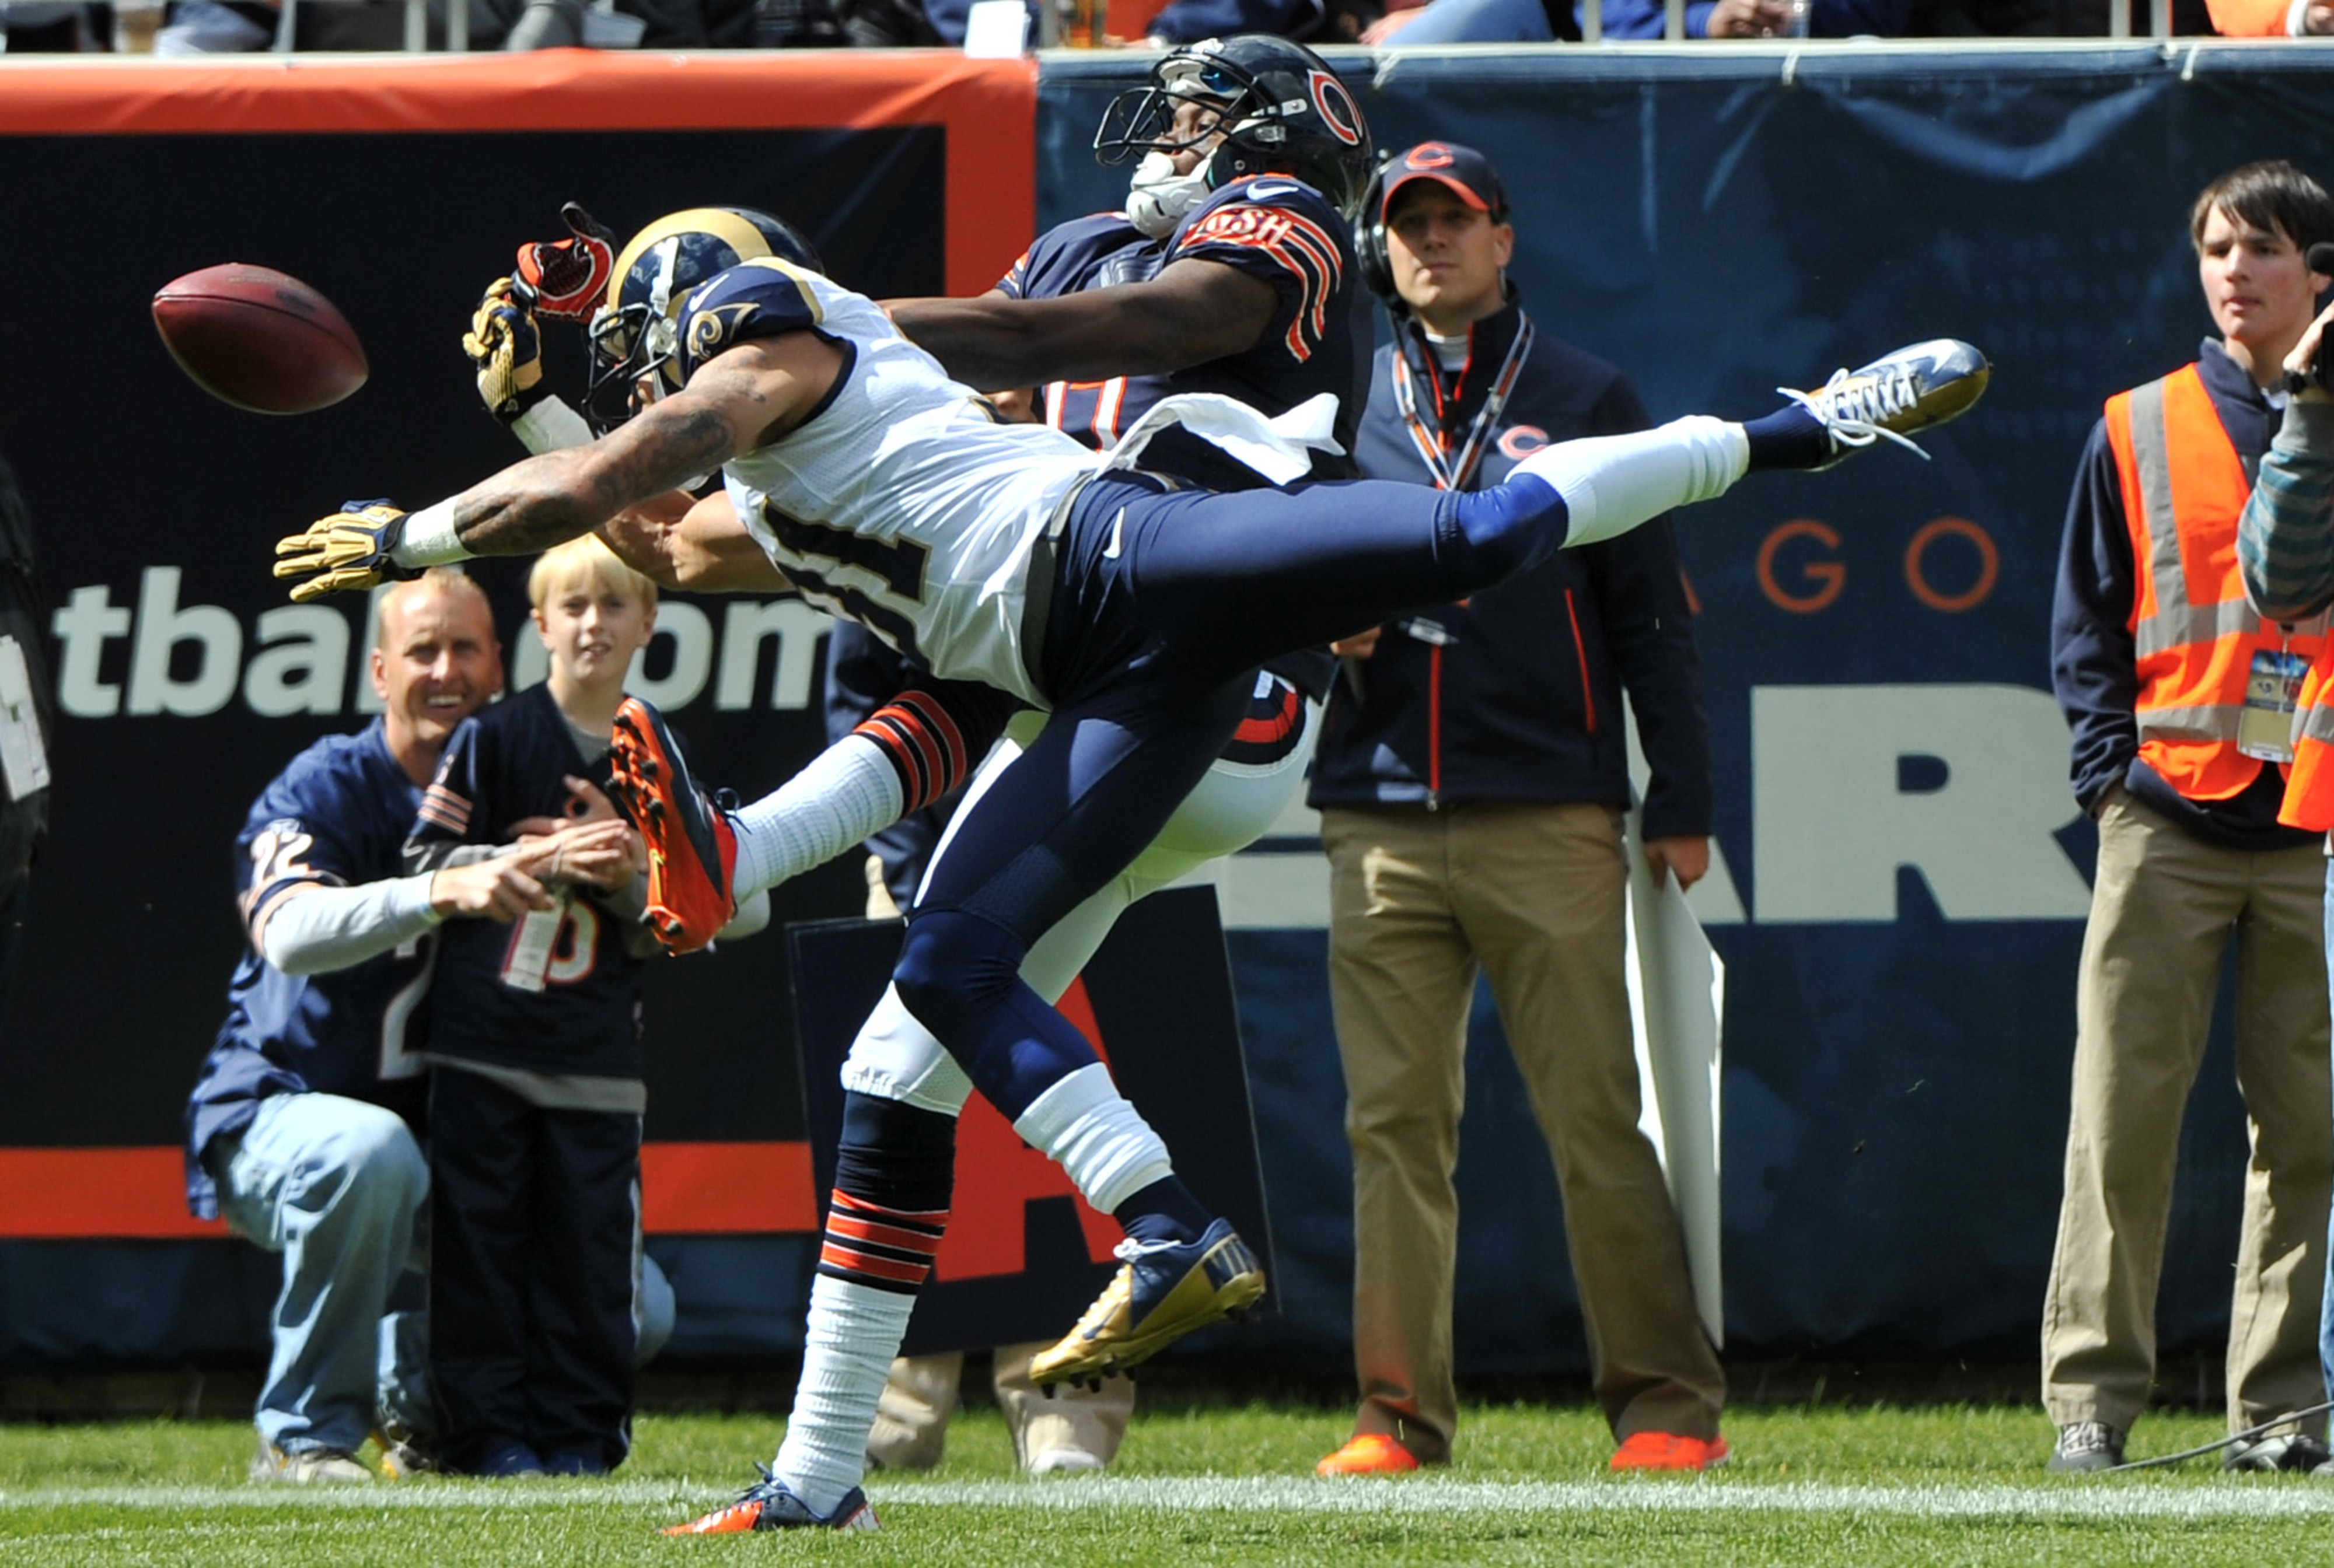 Sep 23, 2012; Chicago, IL, USA; St. Louis Rams cornerback Cortland Finnegan (31) breaks up a pass intended for Chicago Bears wide receiver Alshon Jeffery (17) during the first quarter at Soldier Field.  Mandatory Credit: Rob Grabowski-US PRESSWIRE